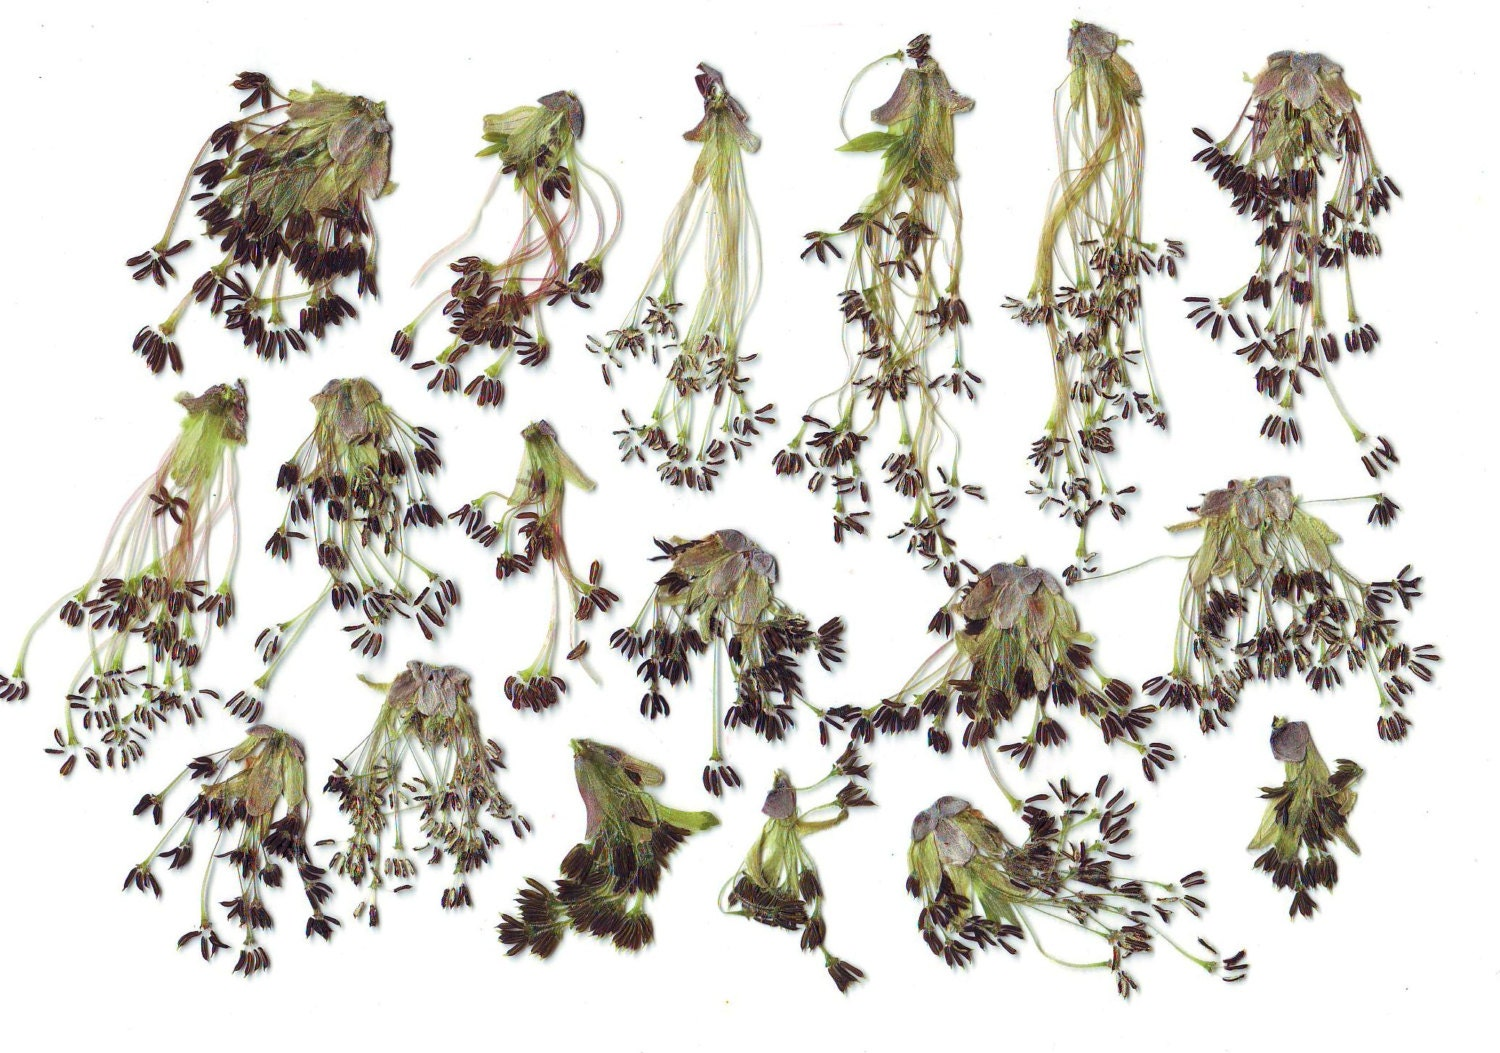 How to scrapbook dried flowers - Sold By Artsyniakinashop